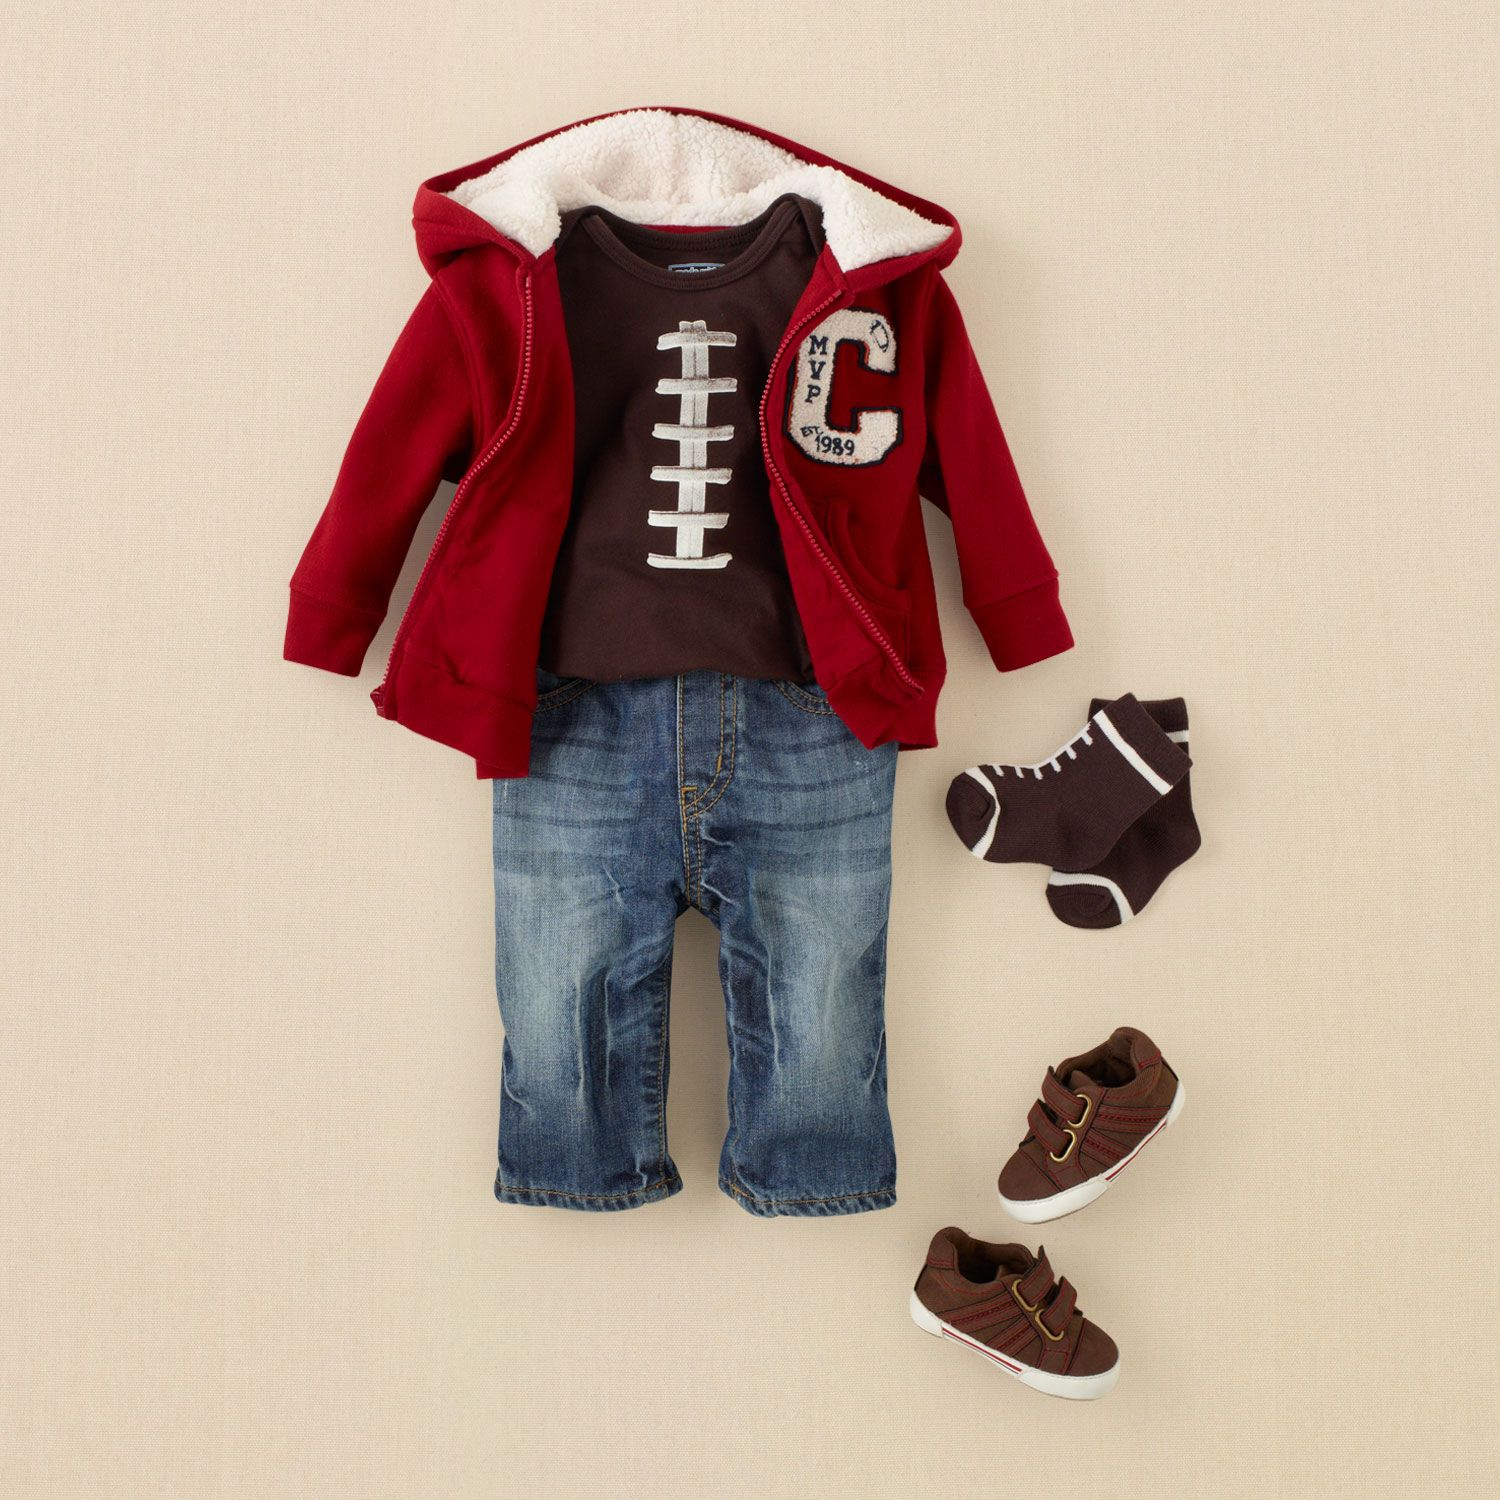 newborn - outfits - preppy boy - football fan  a37cc371ebb5f